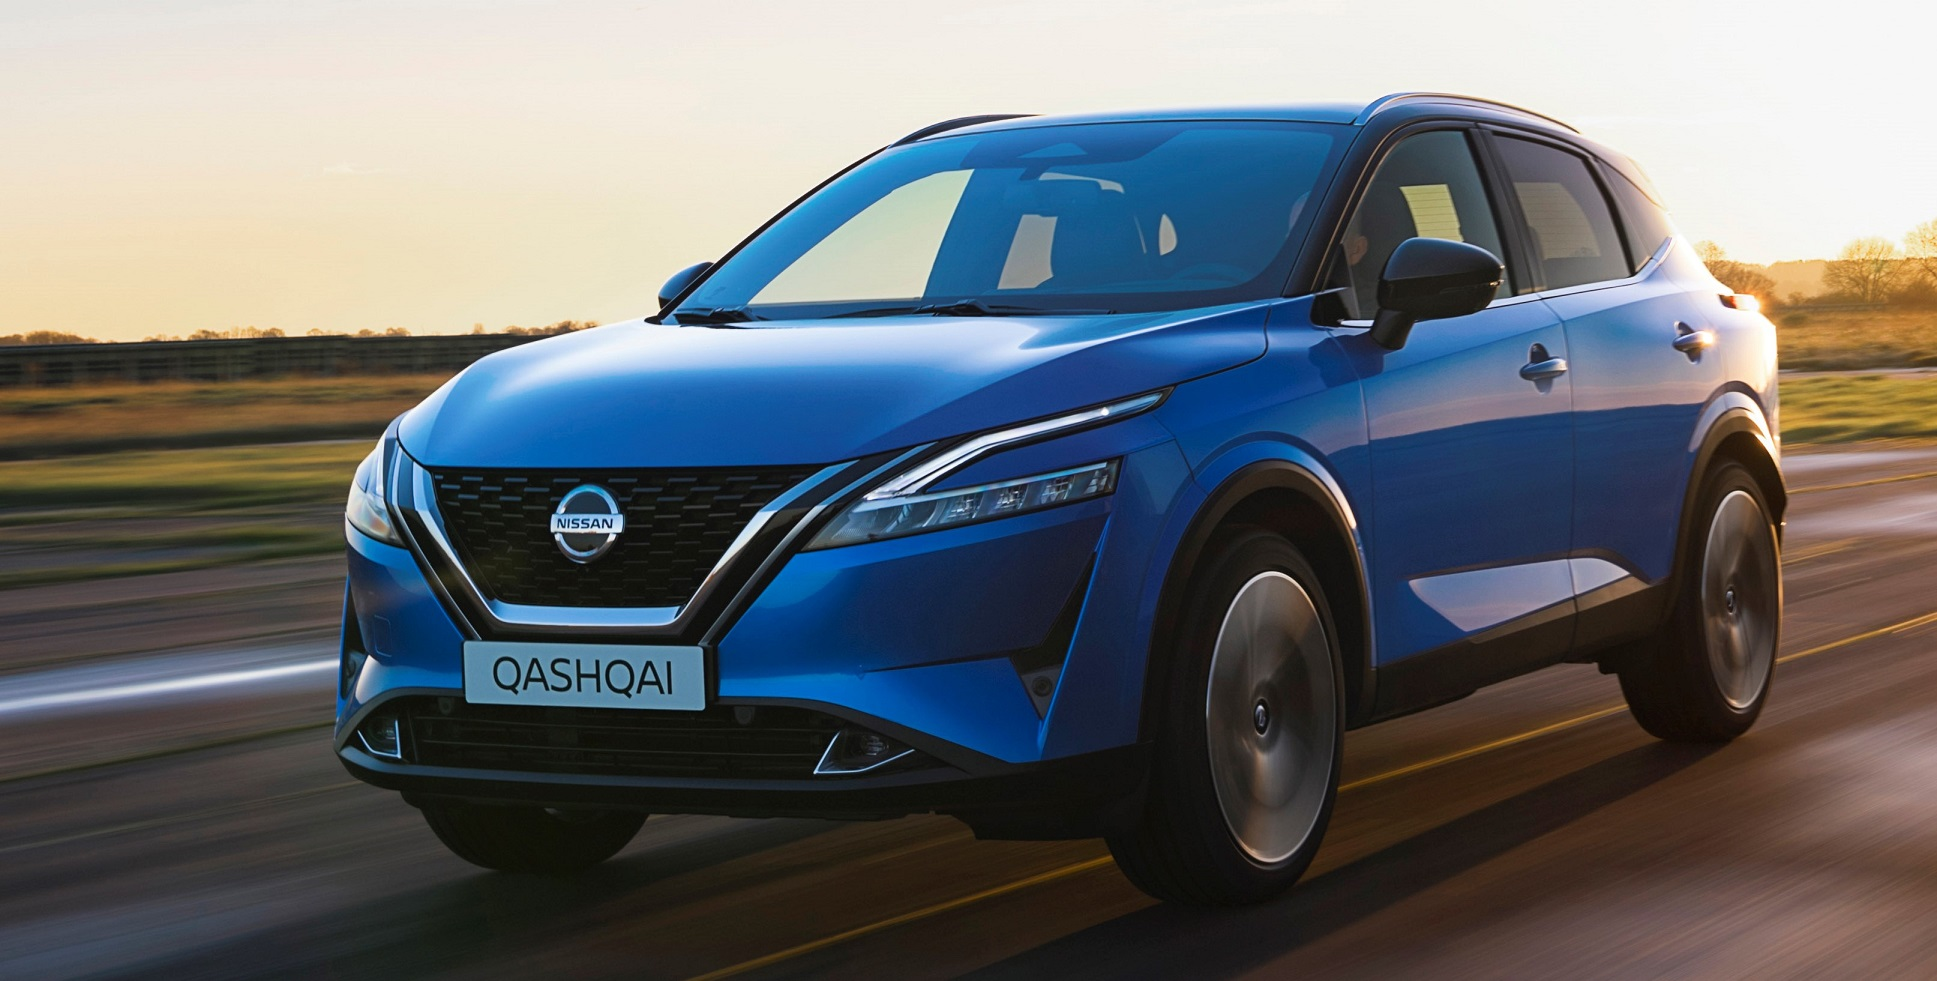 All-new Nissan Qashqai spec unveiled